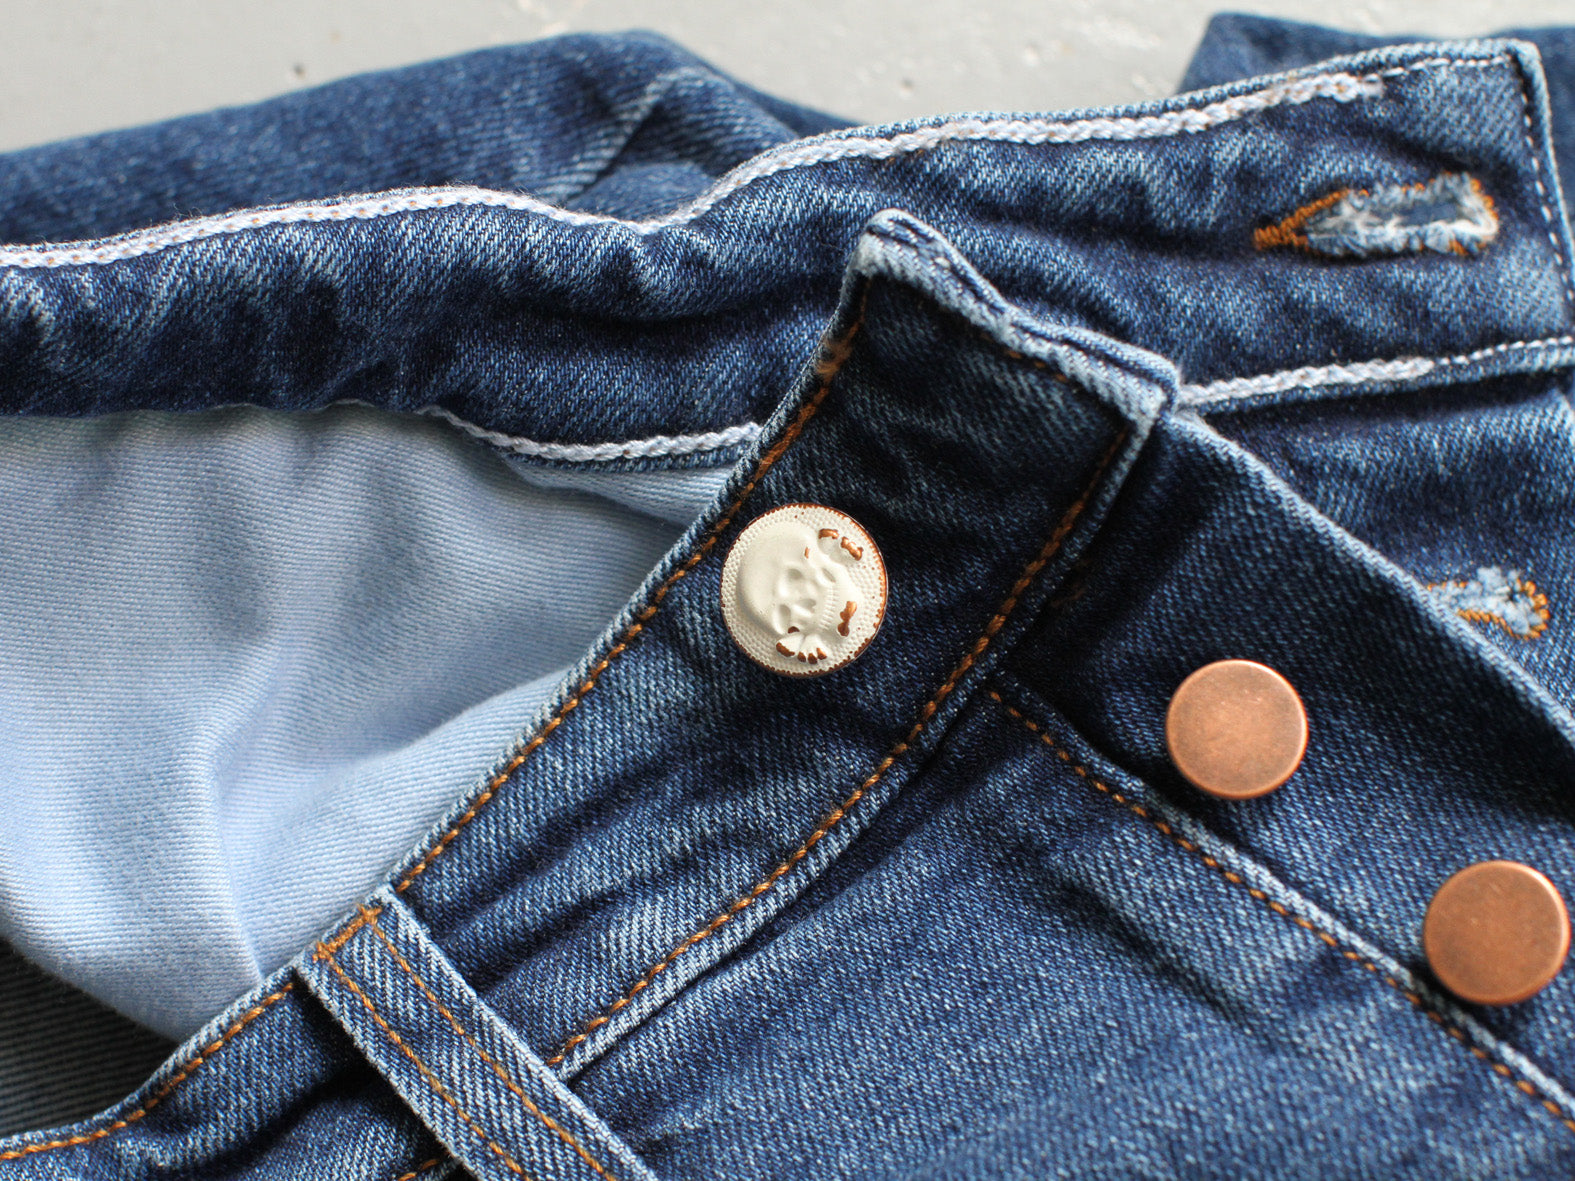 No 8 WASH. UNION JEANS.